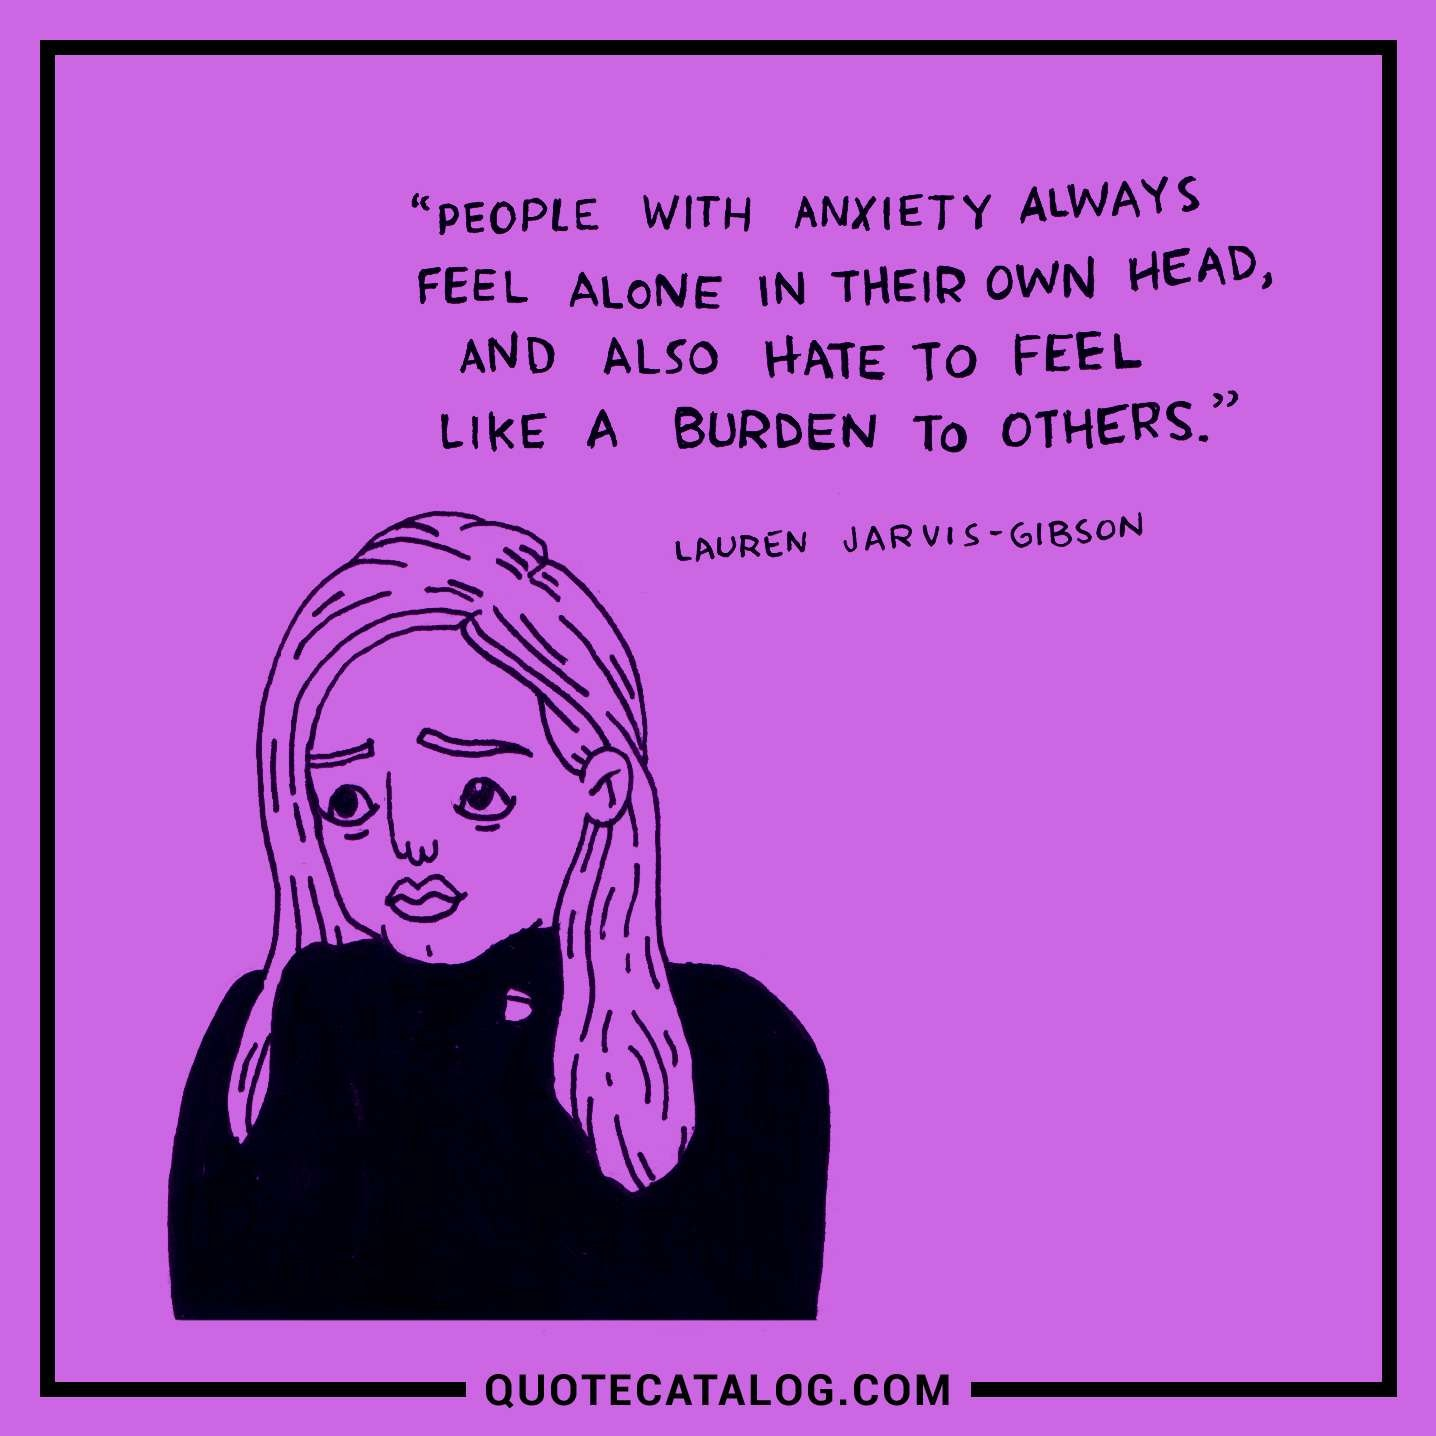 Image of: Depression Anxiety Quotes Healthyplace 100 Soothing Anxiety Quotes Quote Catalog